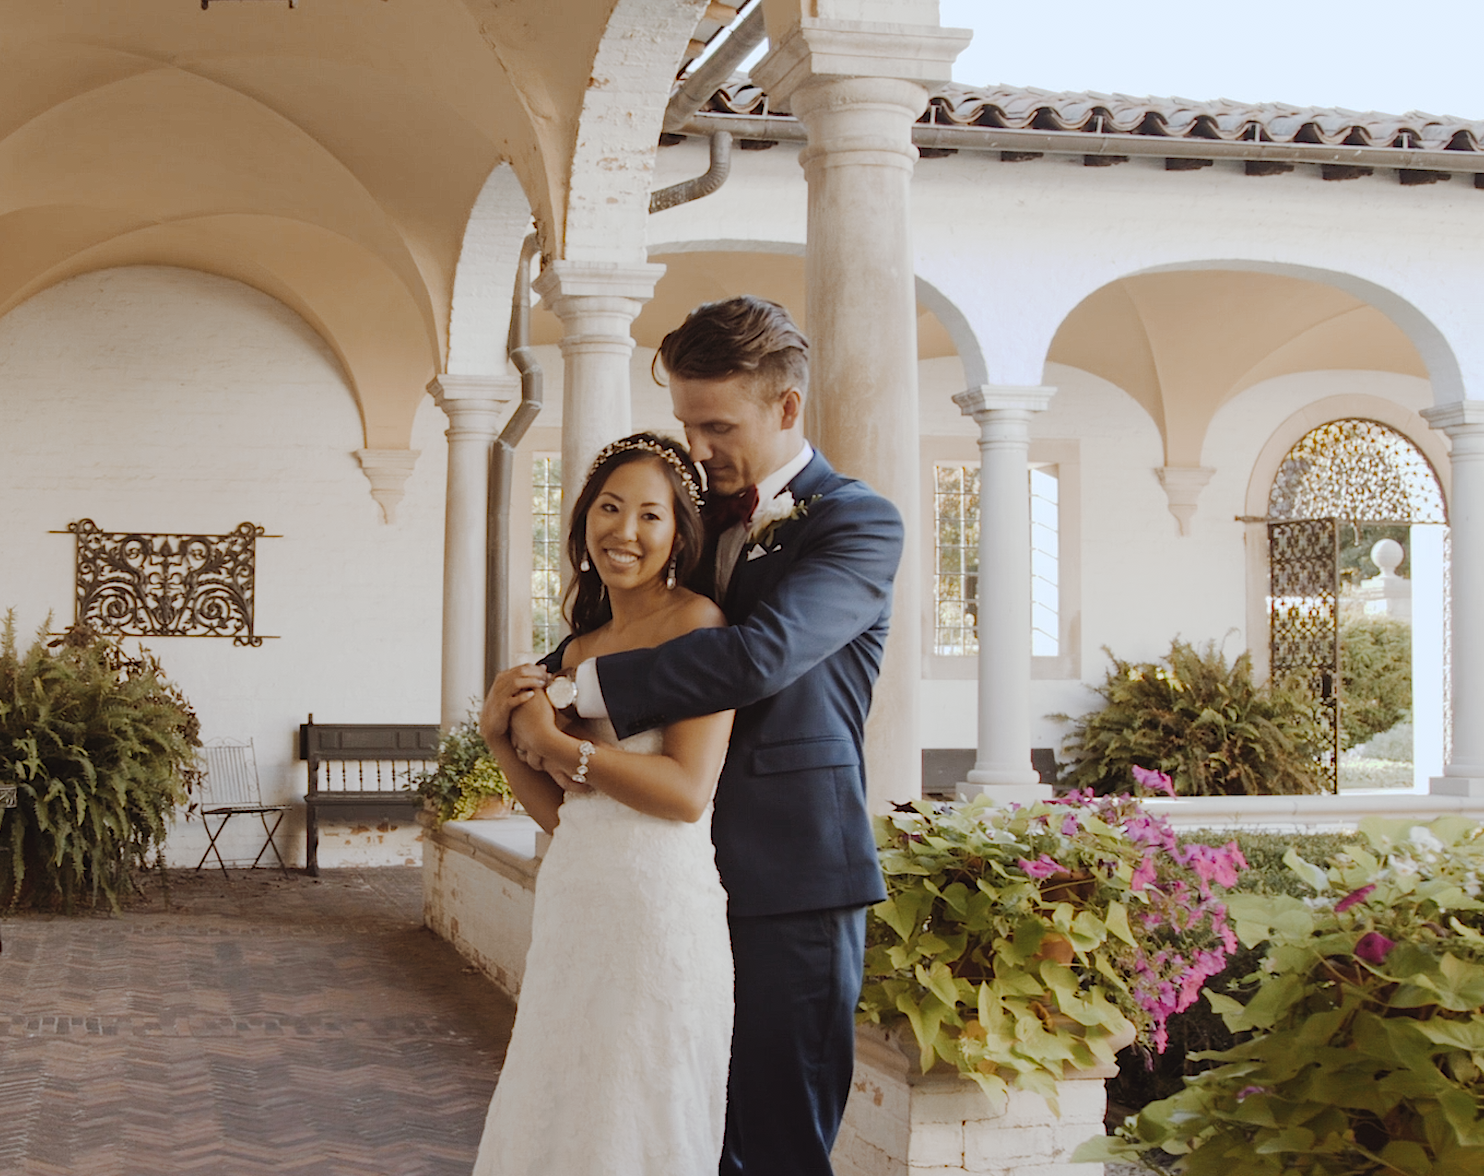 Janice + Colin | Milwaukee, Wisconsin | Villa Terrace Decorative Arts Museum